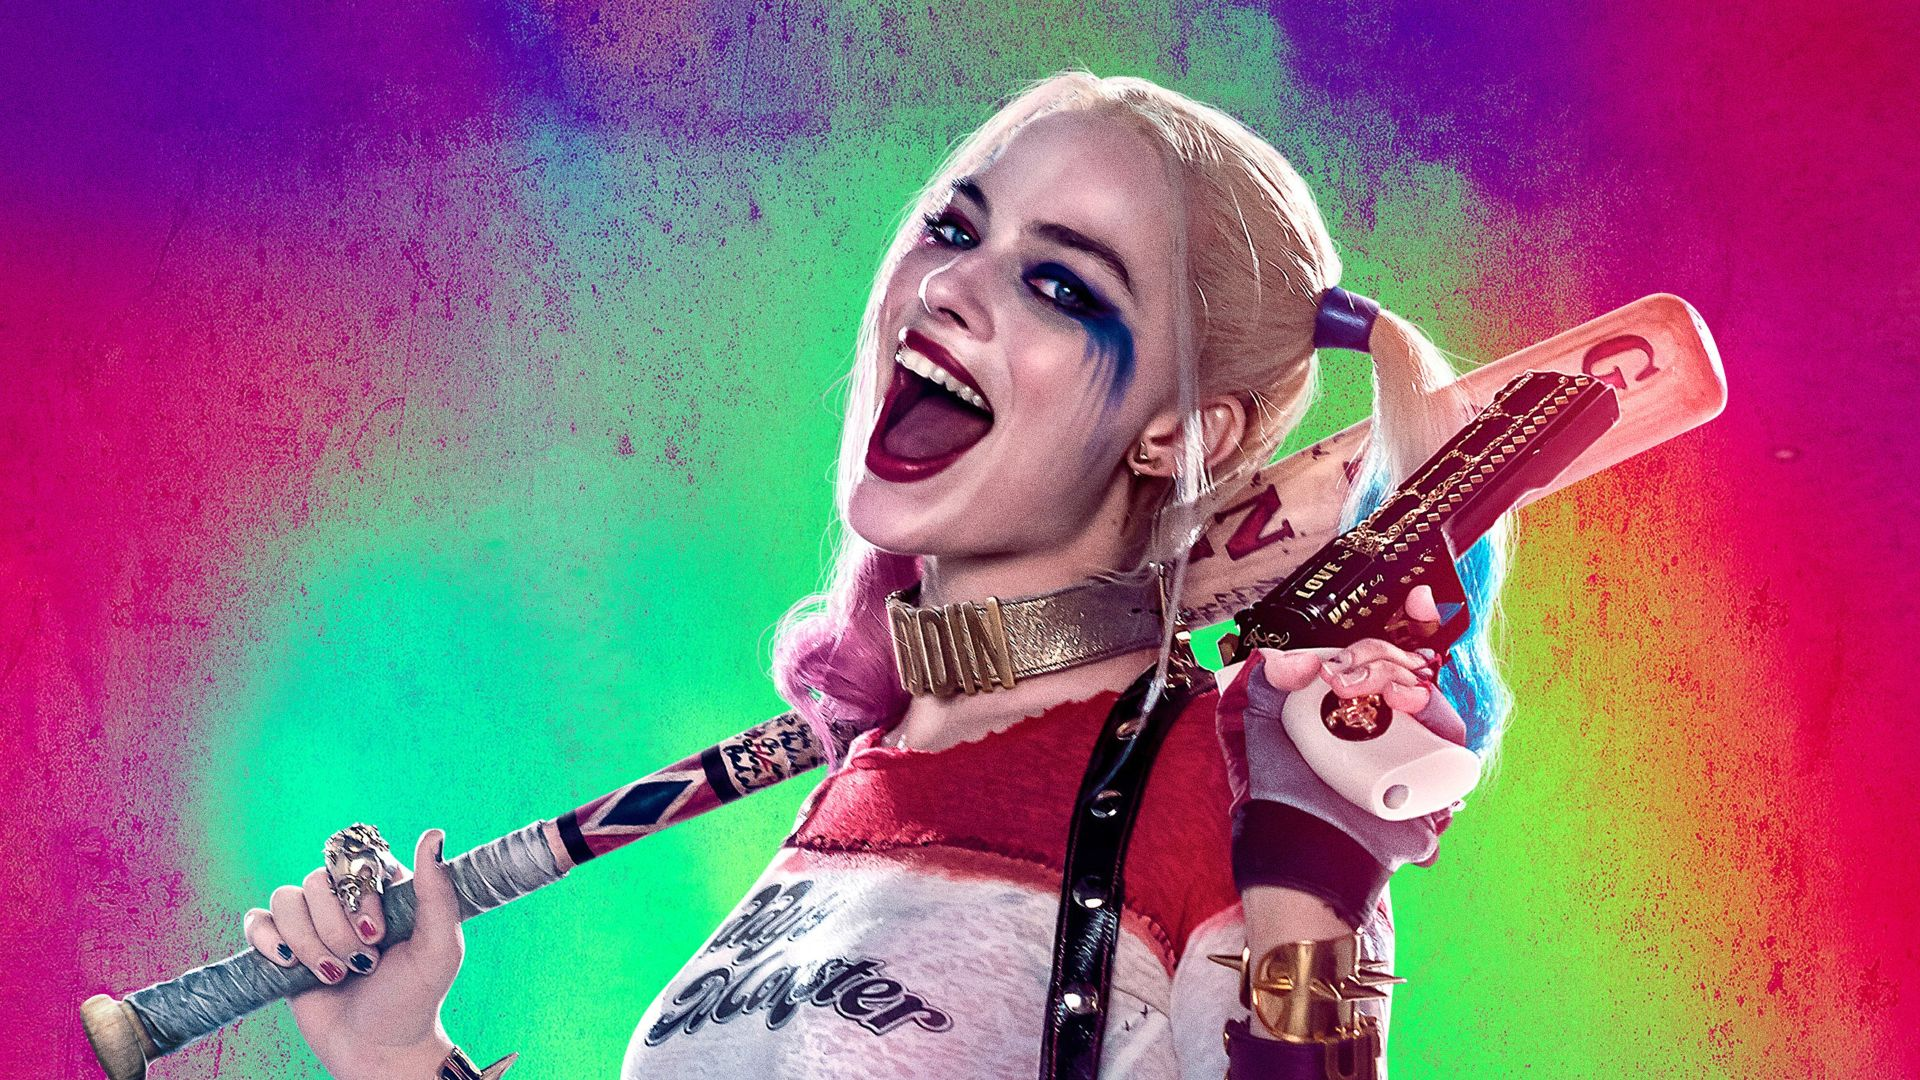 Suicide Squad Harley Quinn, Computer Wallpaper